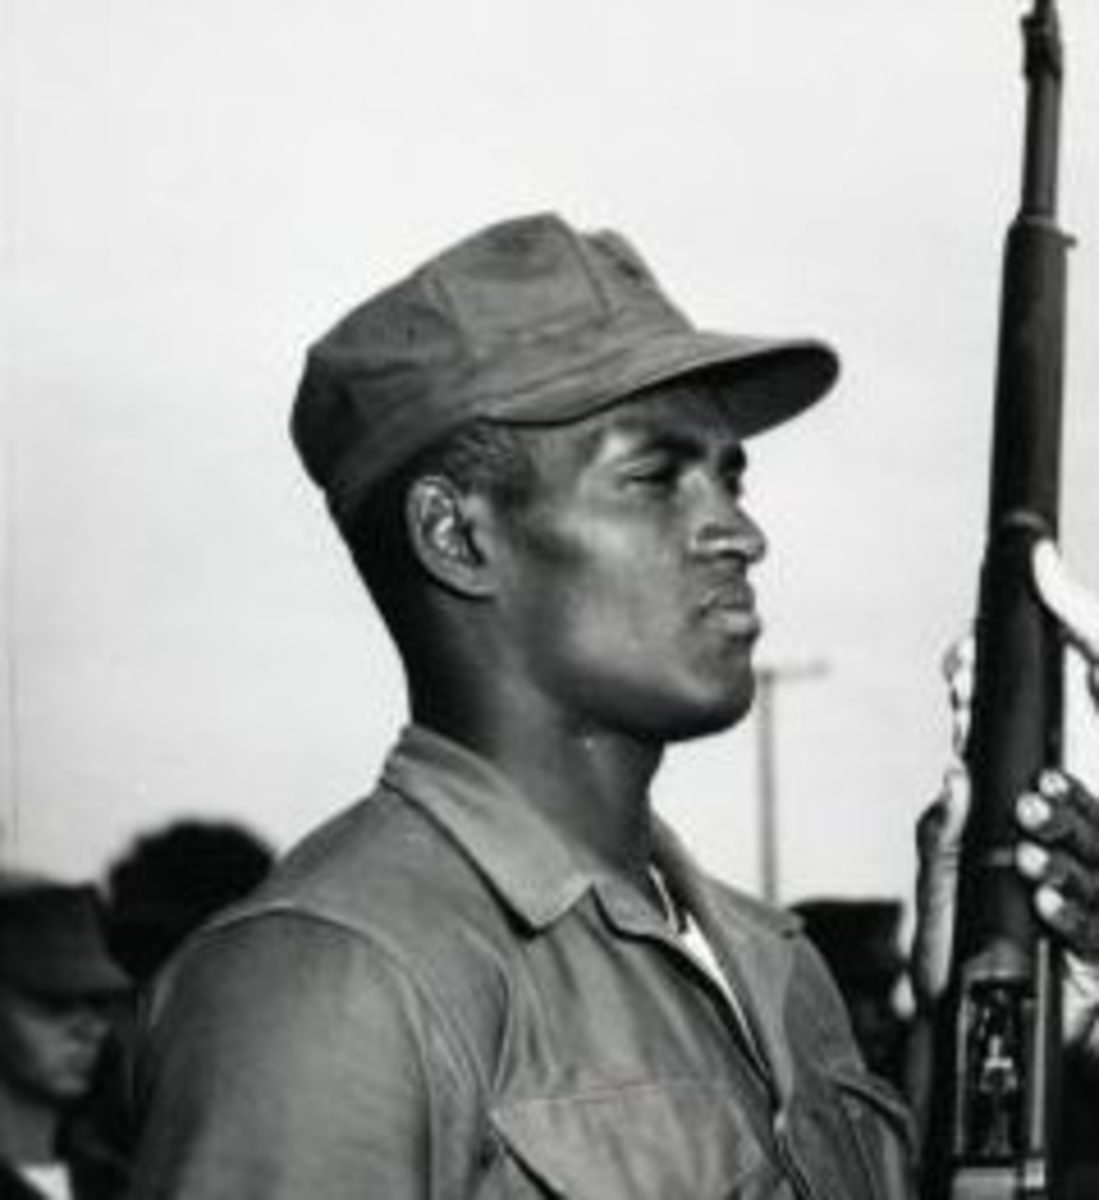 Roberto Clemente in the US Marine Corps.